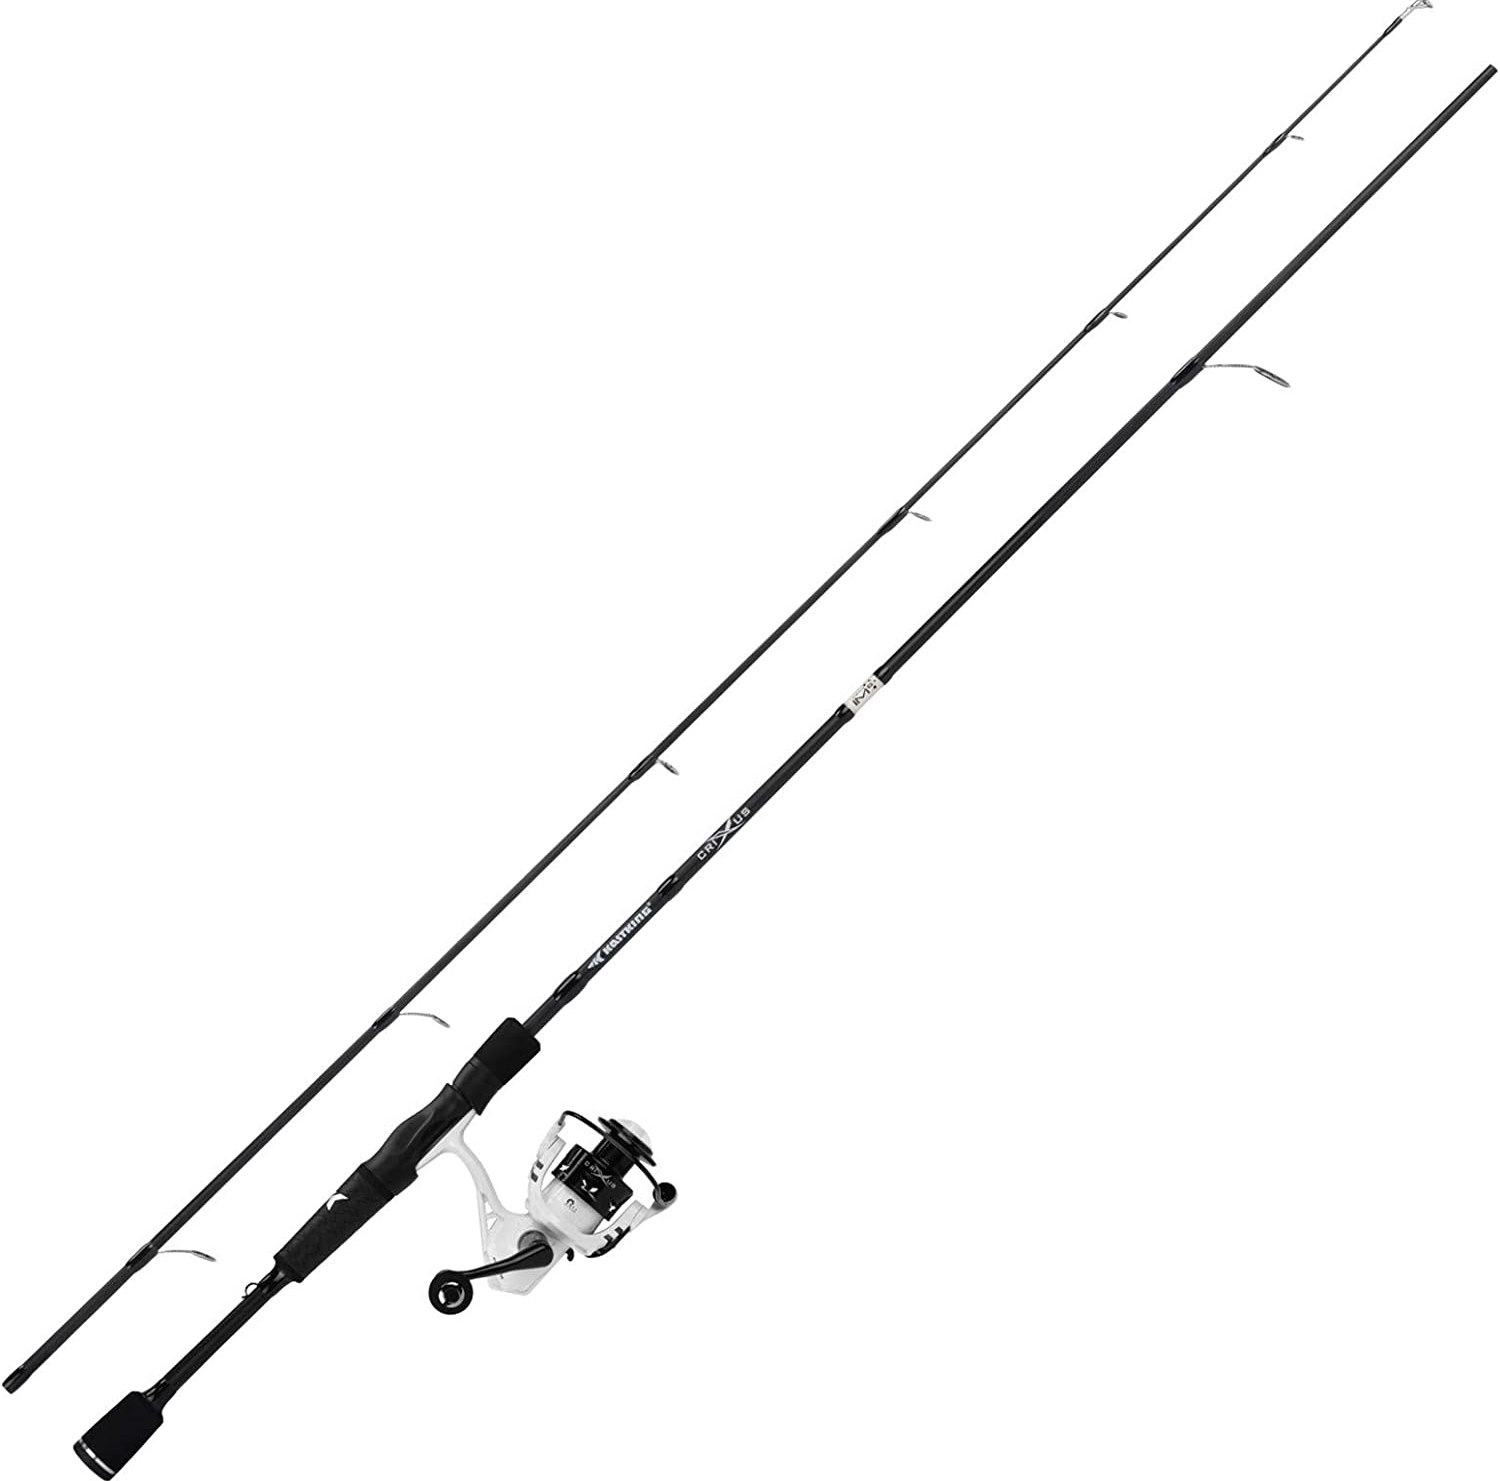 KastKing Crixus Fishing Rod and Reel Combo review